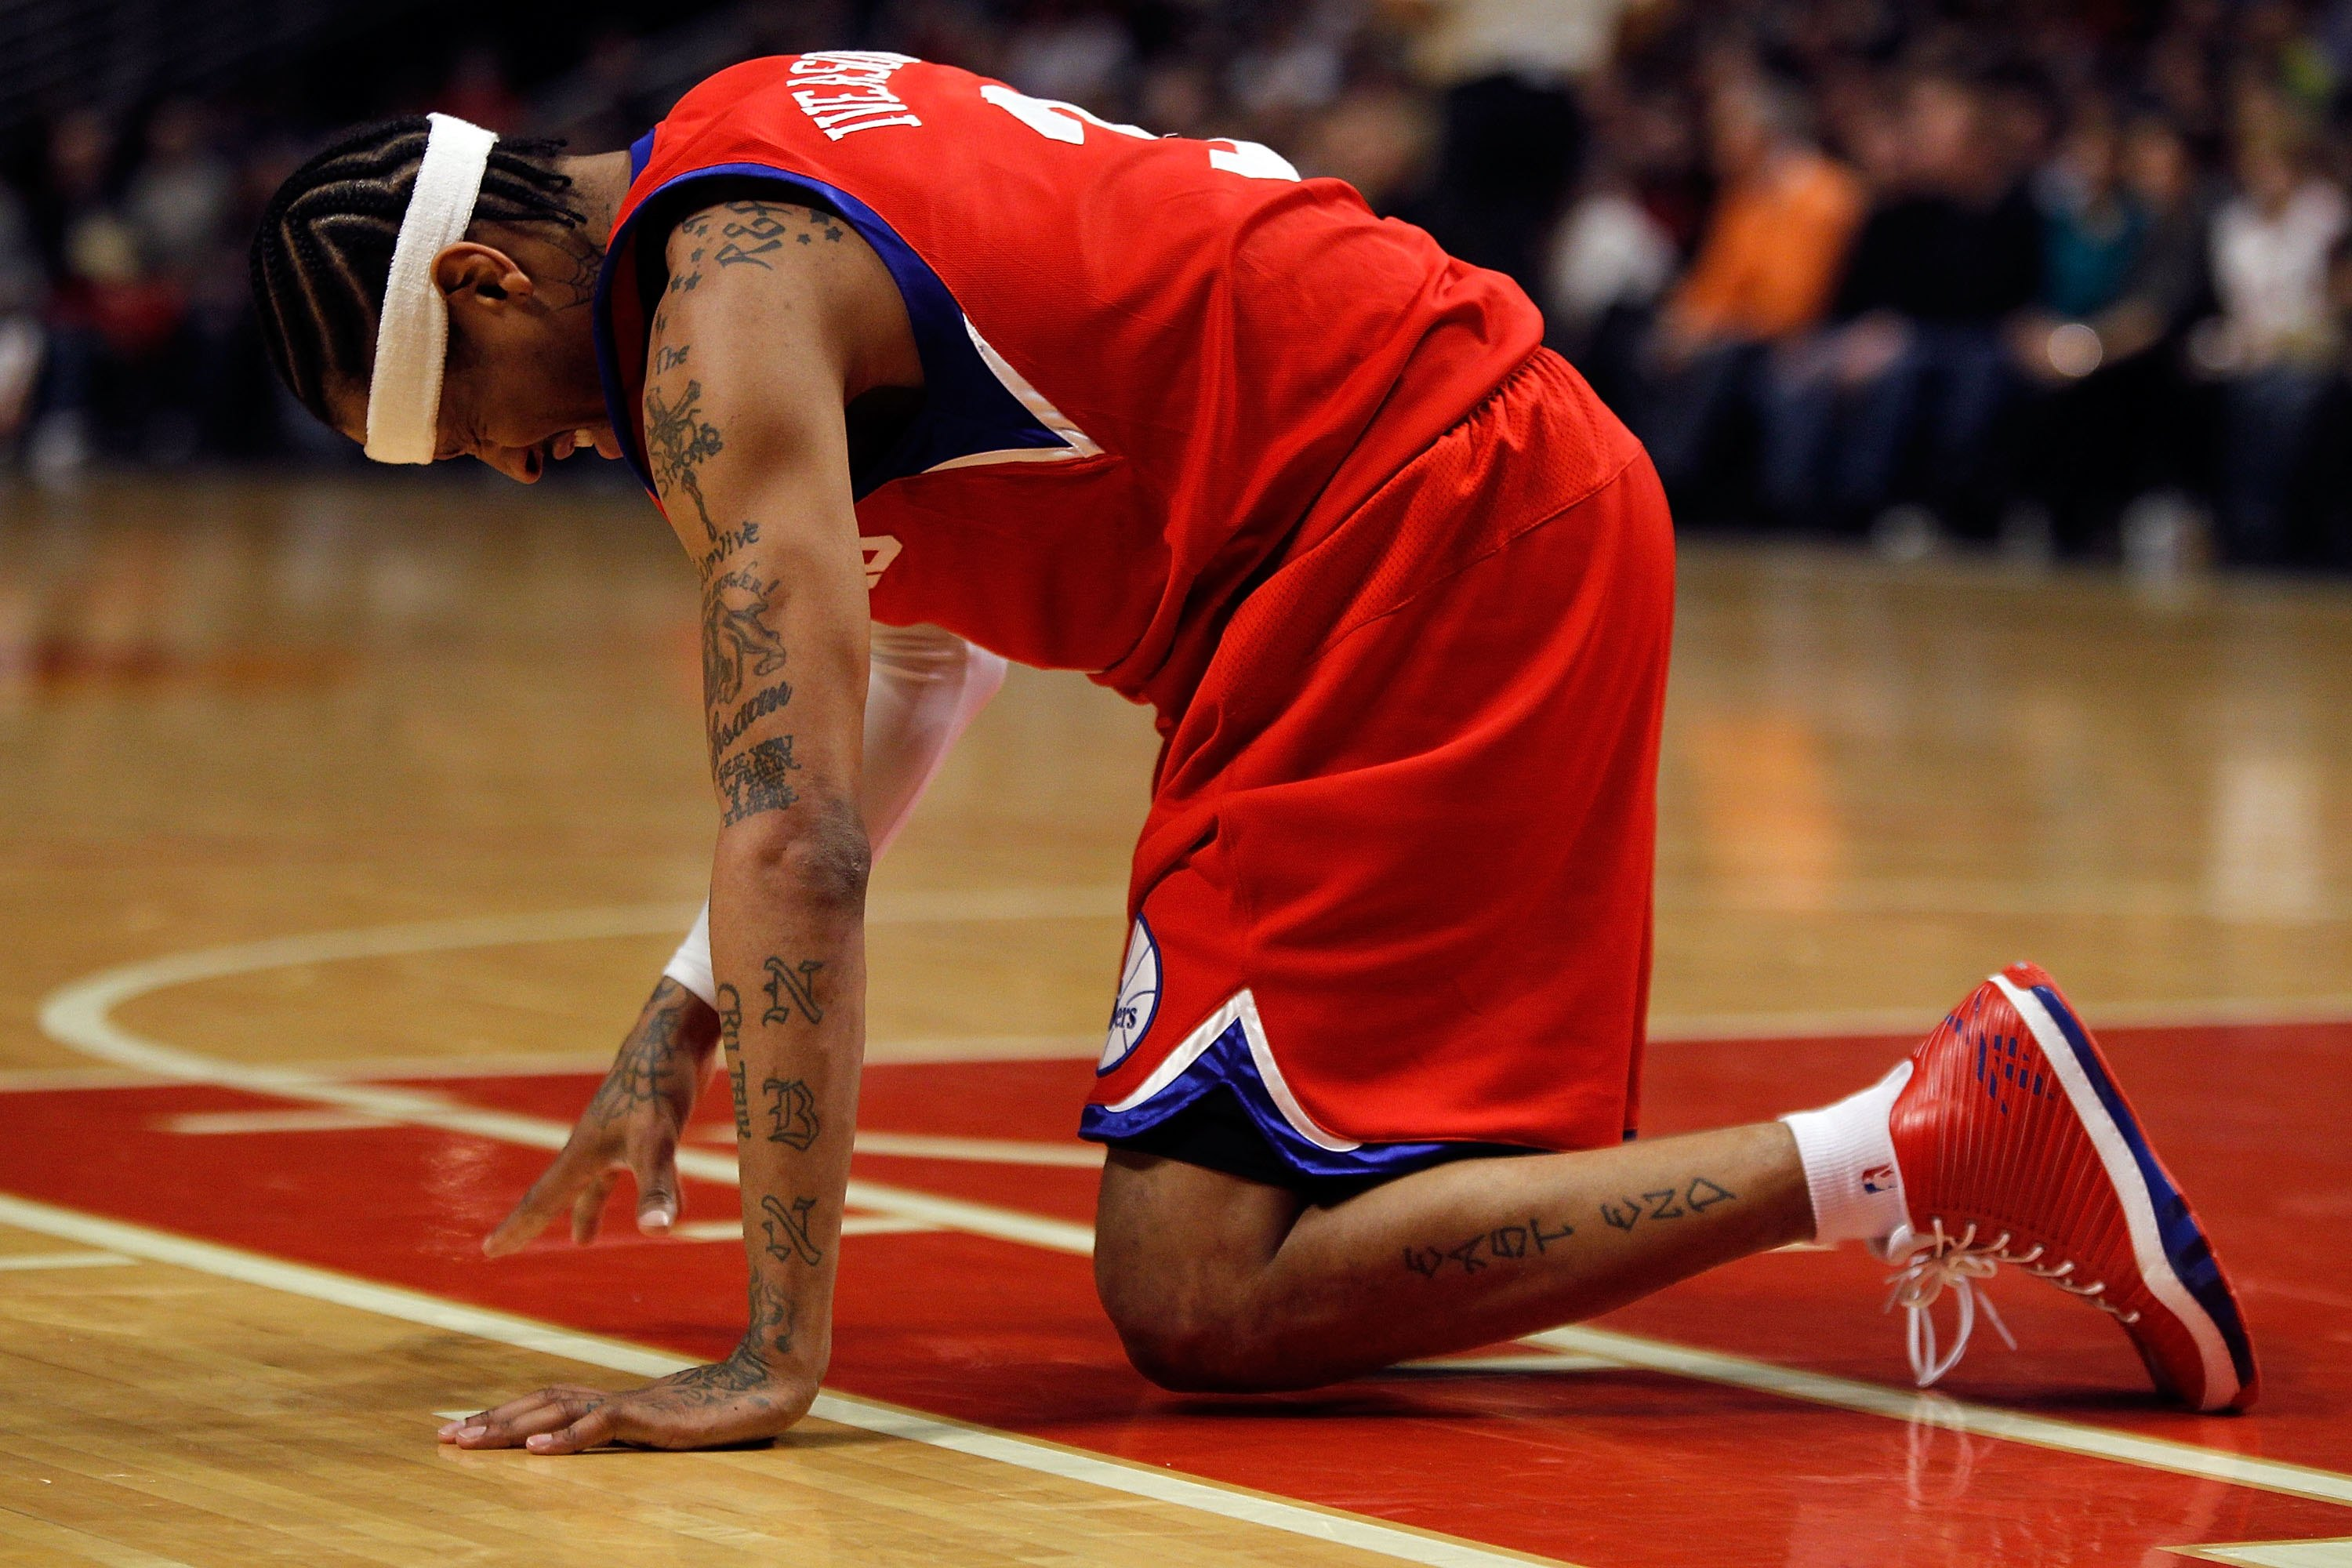 CHICAGO - FEBRUARY 20: Allen Iverson #3 of the Philadelphia 76ers is slow to get up after being hit in the face during a game against the Chicago Bulls at the United Center on February 20, 2010 in Chicago, Illinois. The Bulls defeated the 76ers 122-90. NO